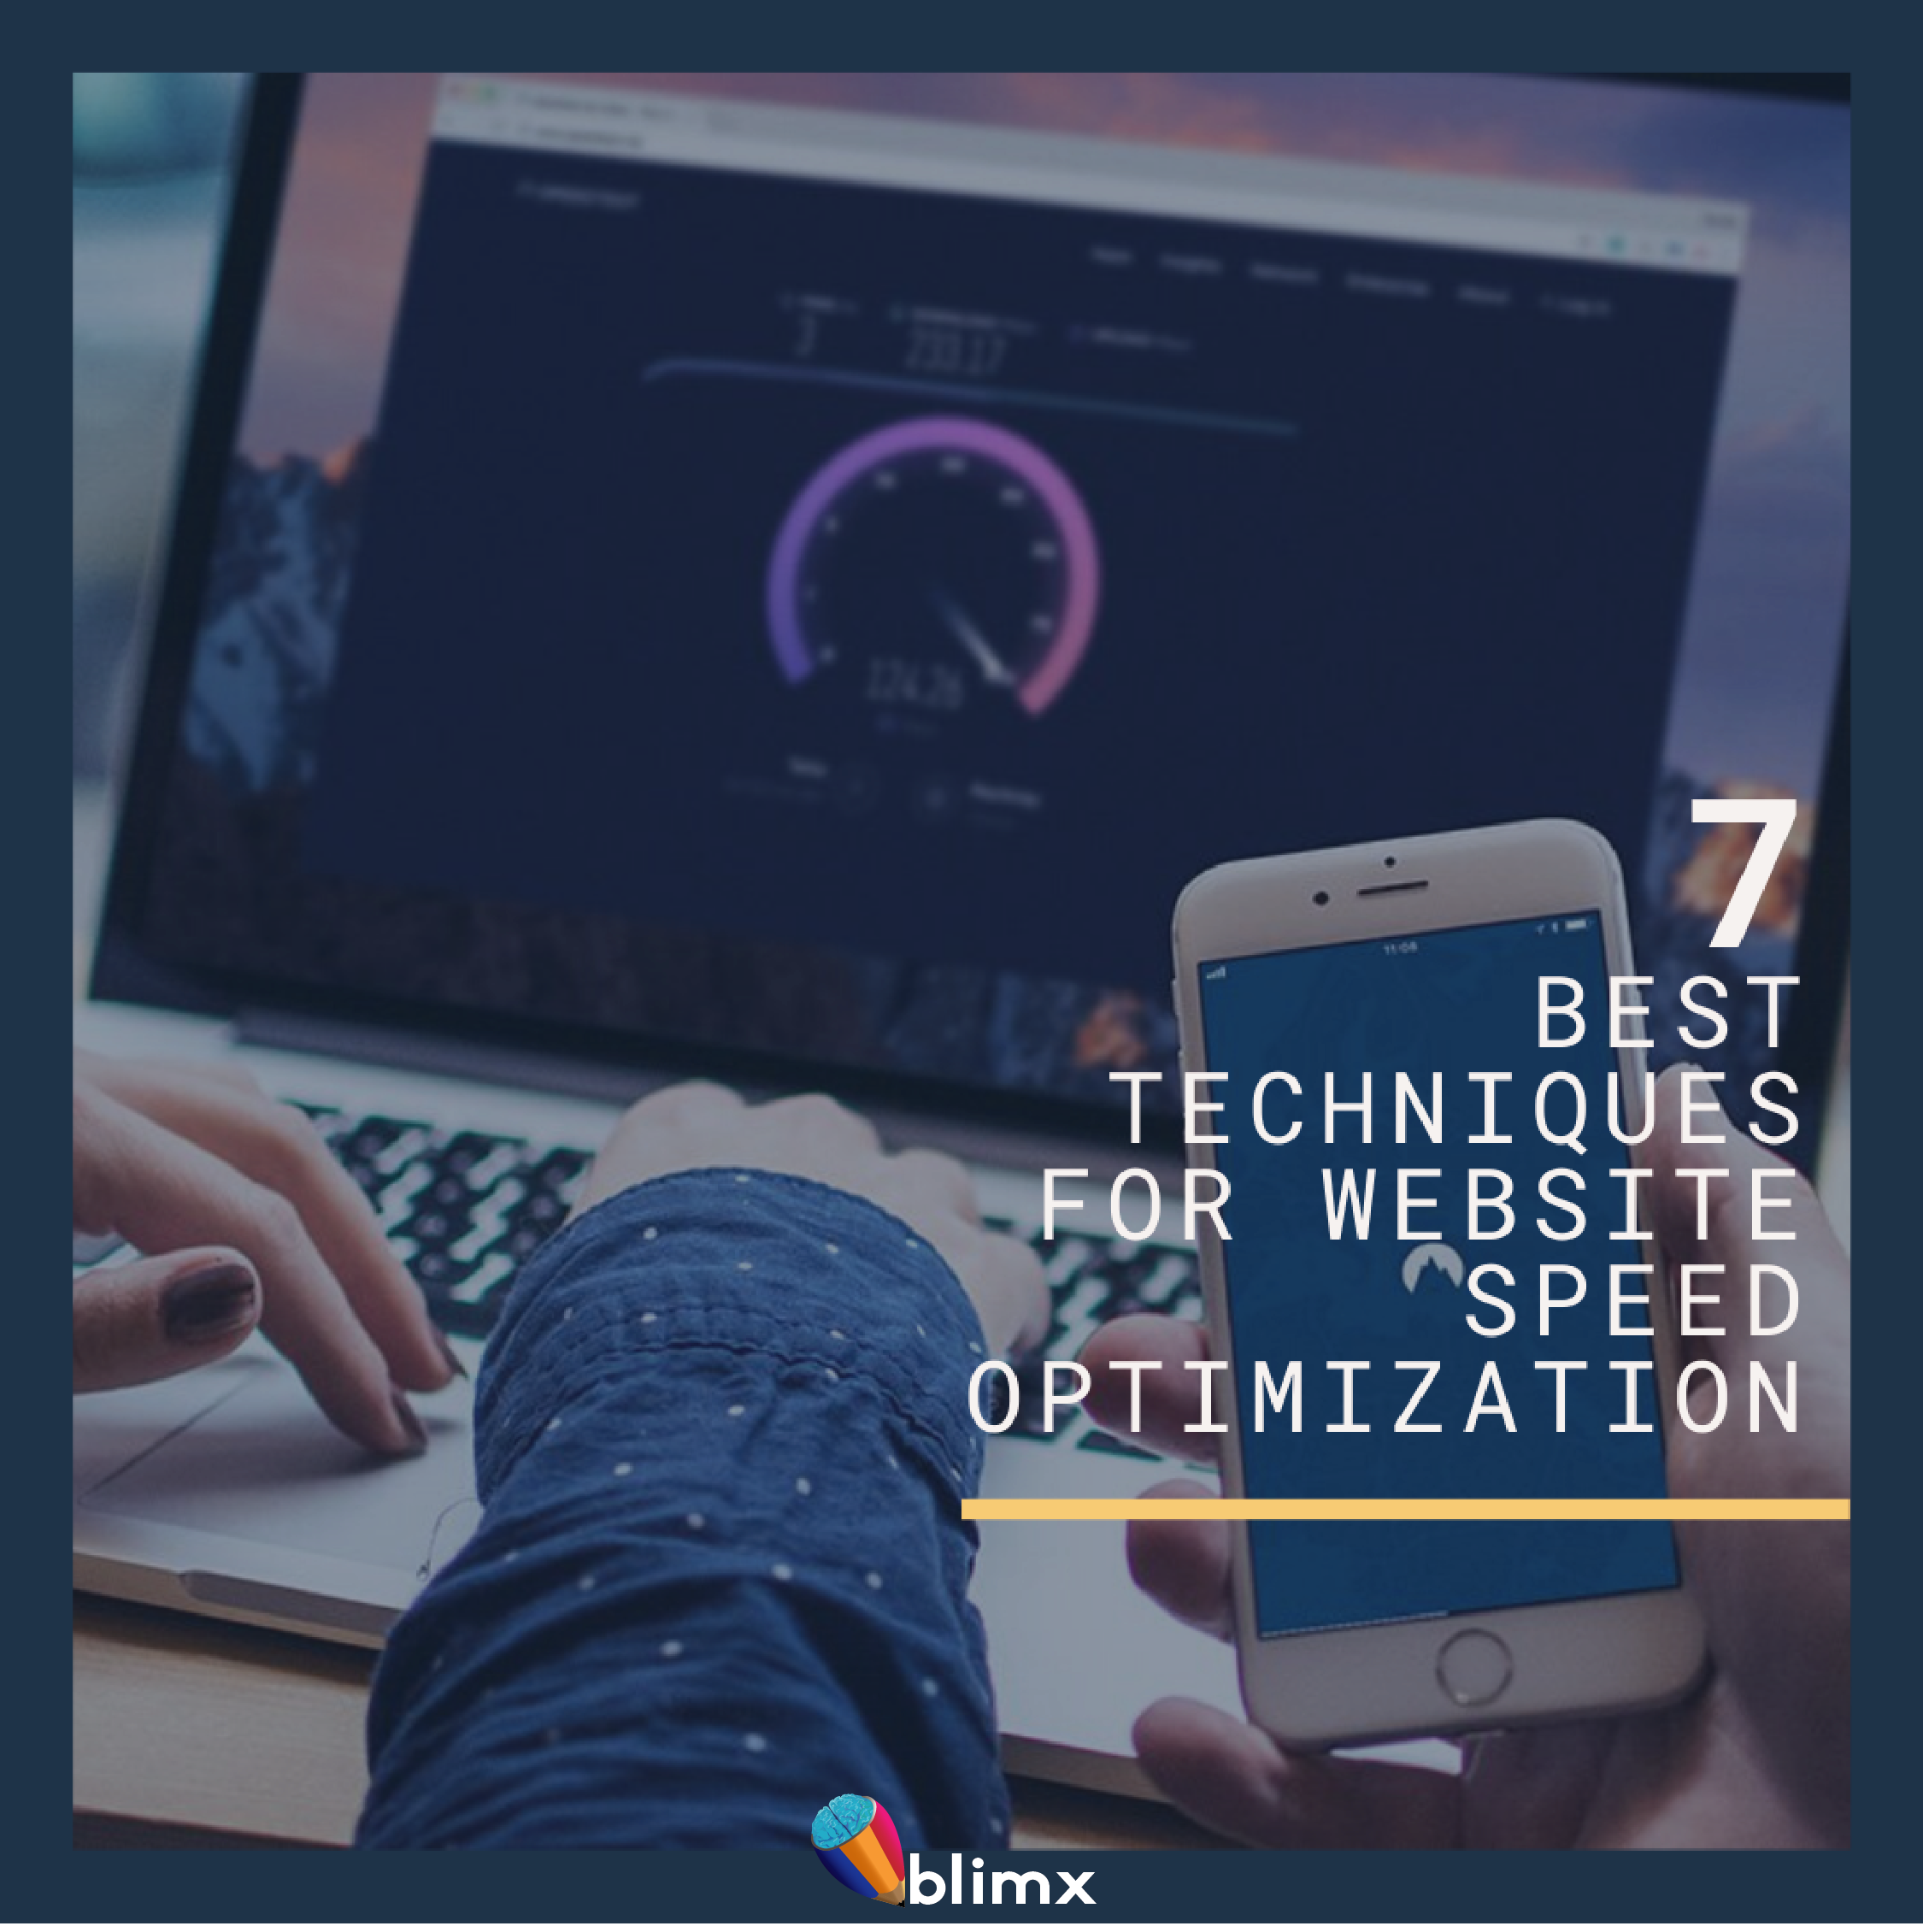 7 Best Techniques for Website Speed Optimization